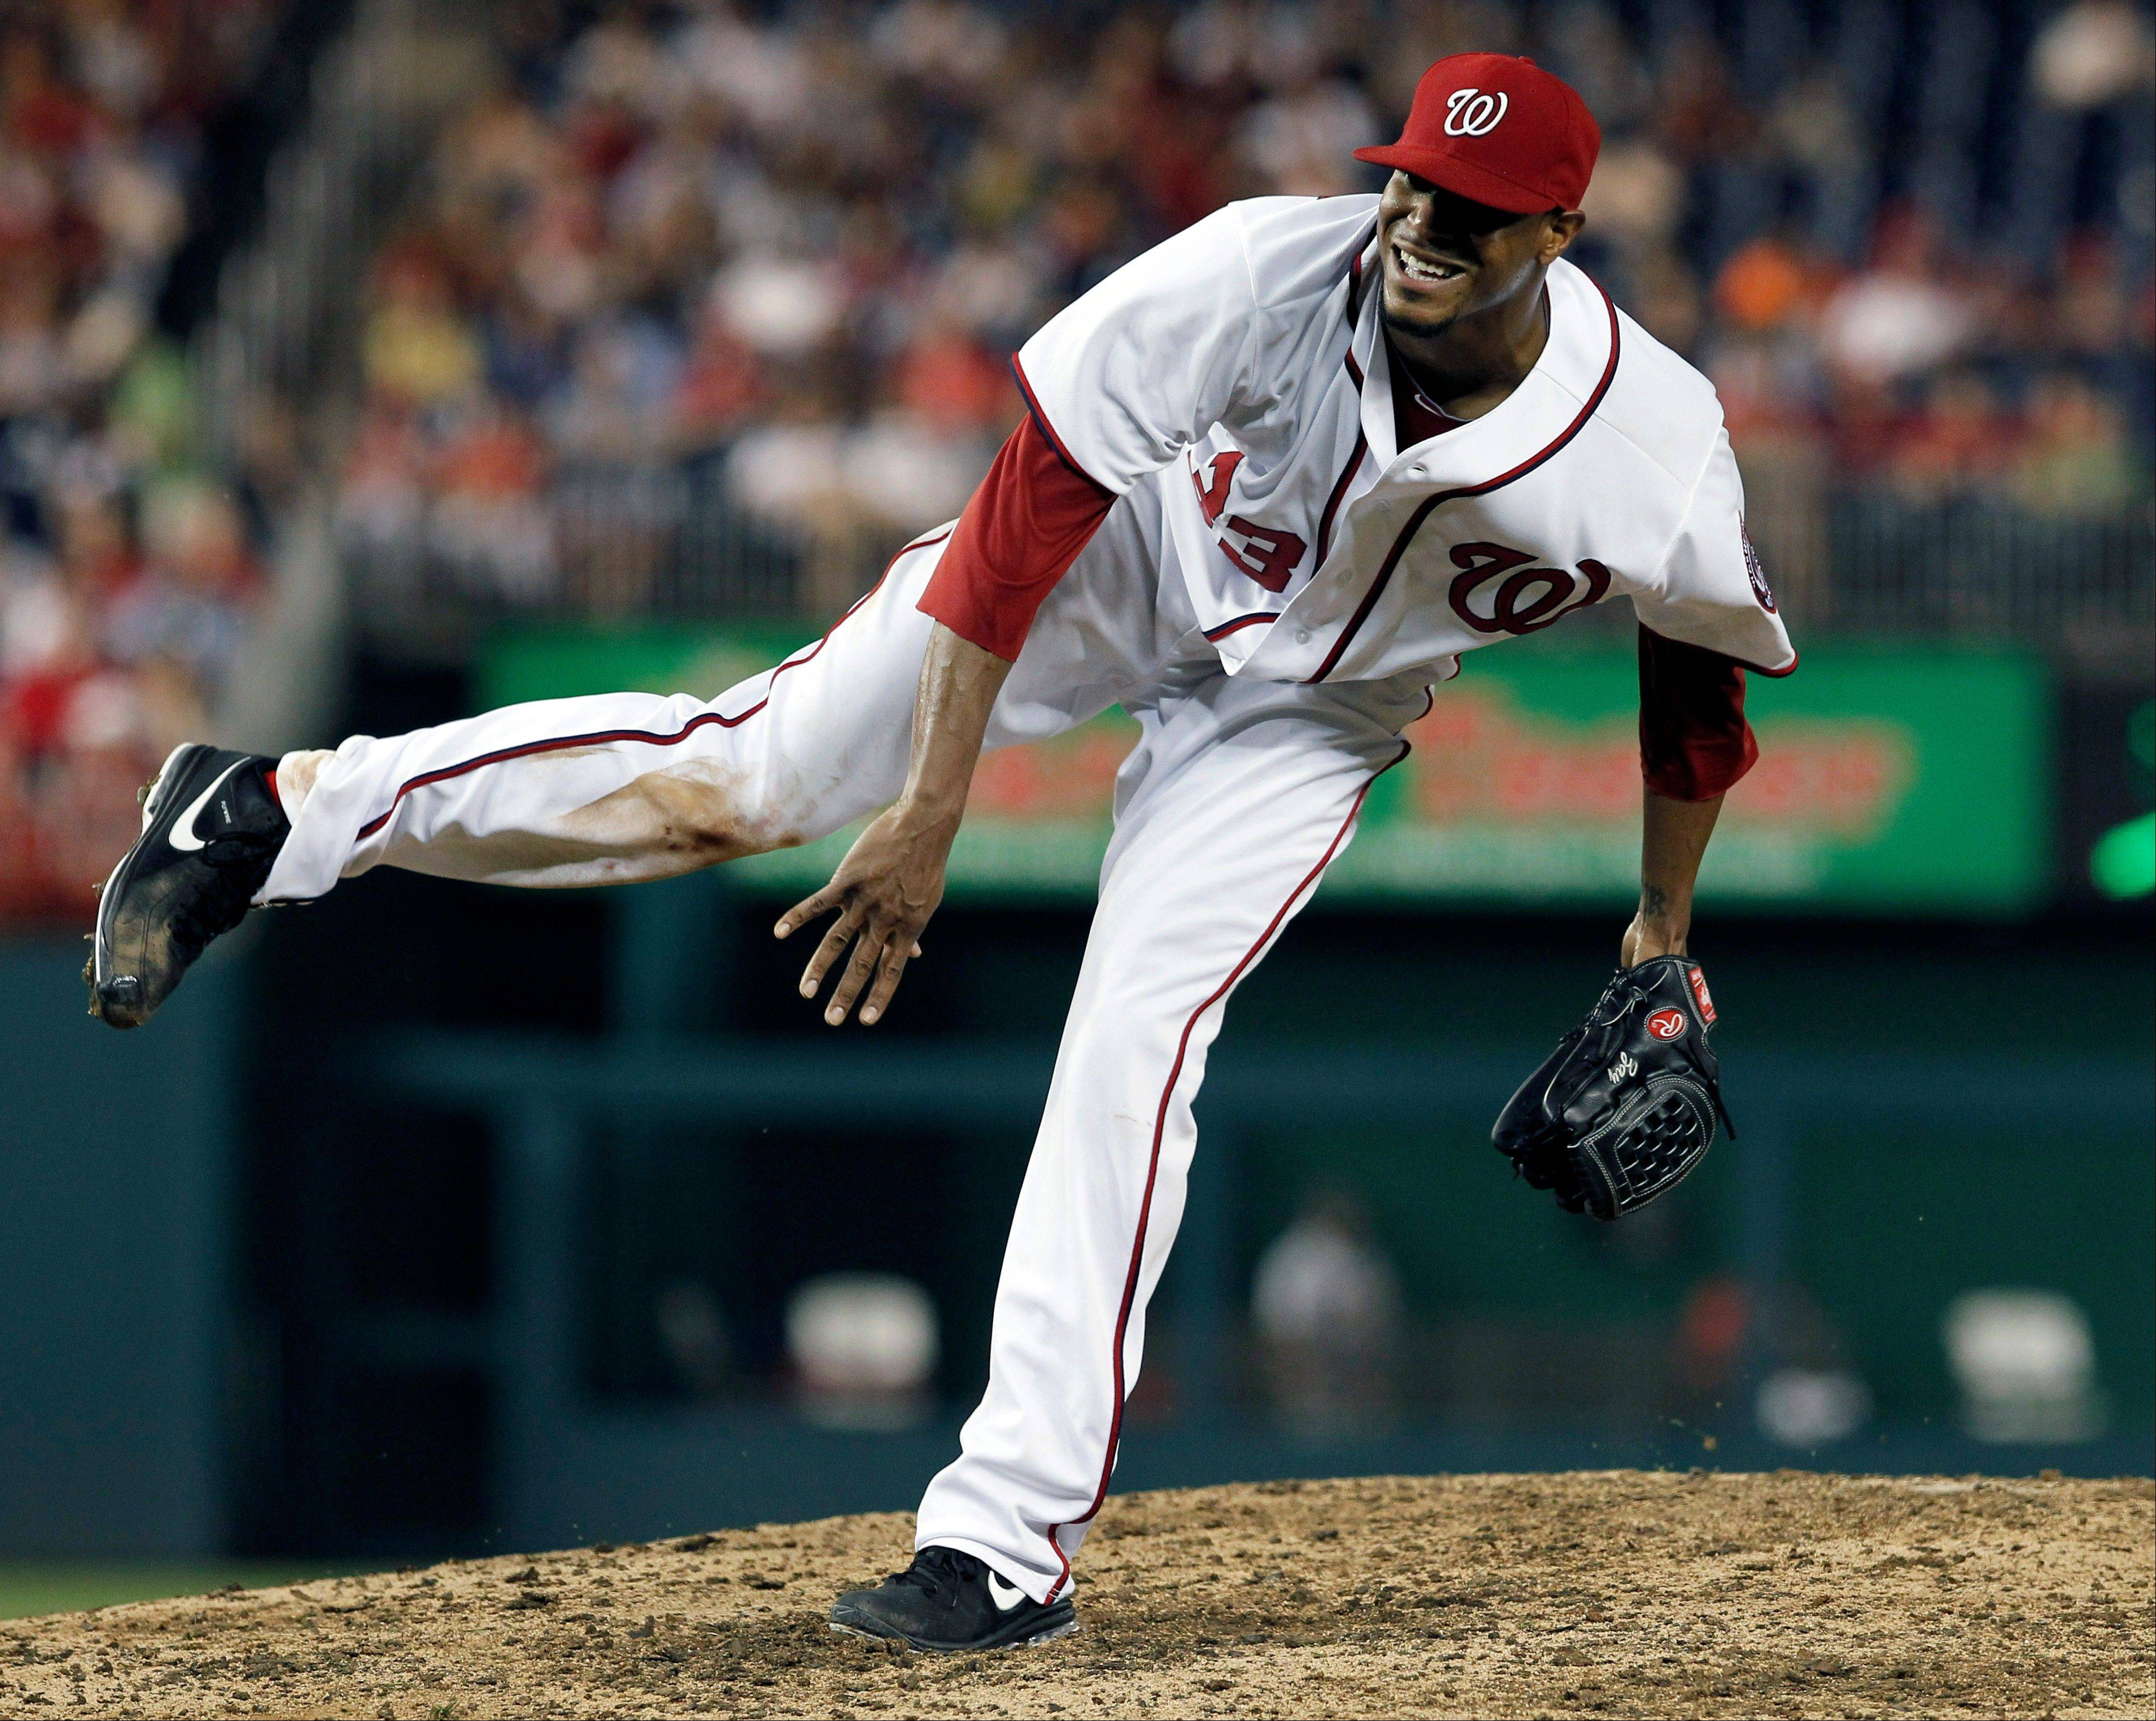 Washington Nationals starting pitcher Edwin Jackson follows through on a pitch during the eighth inning Thursday at home against St. Louis.